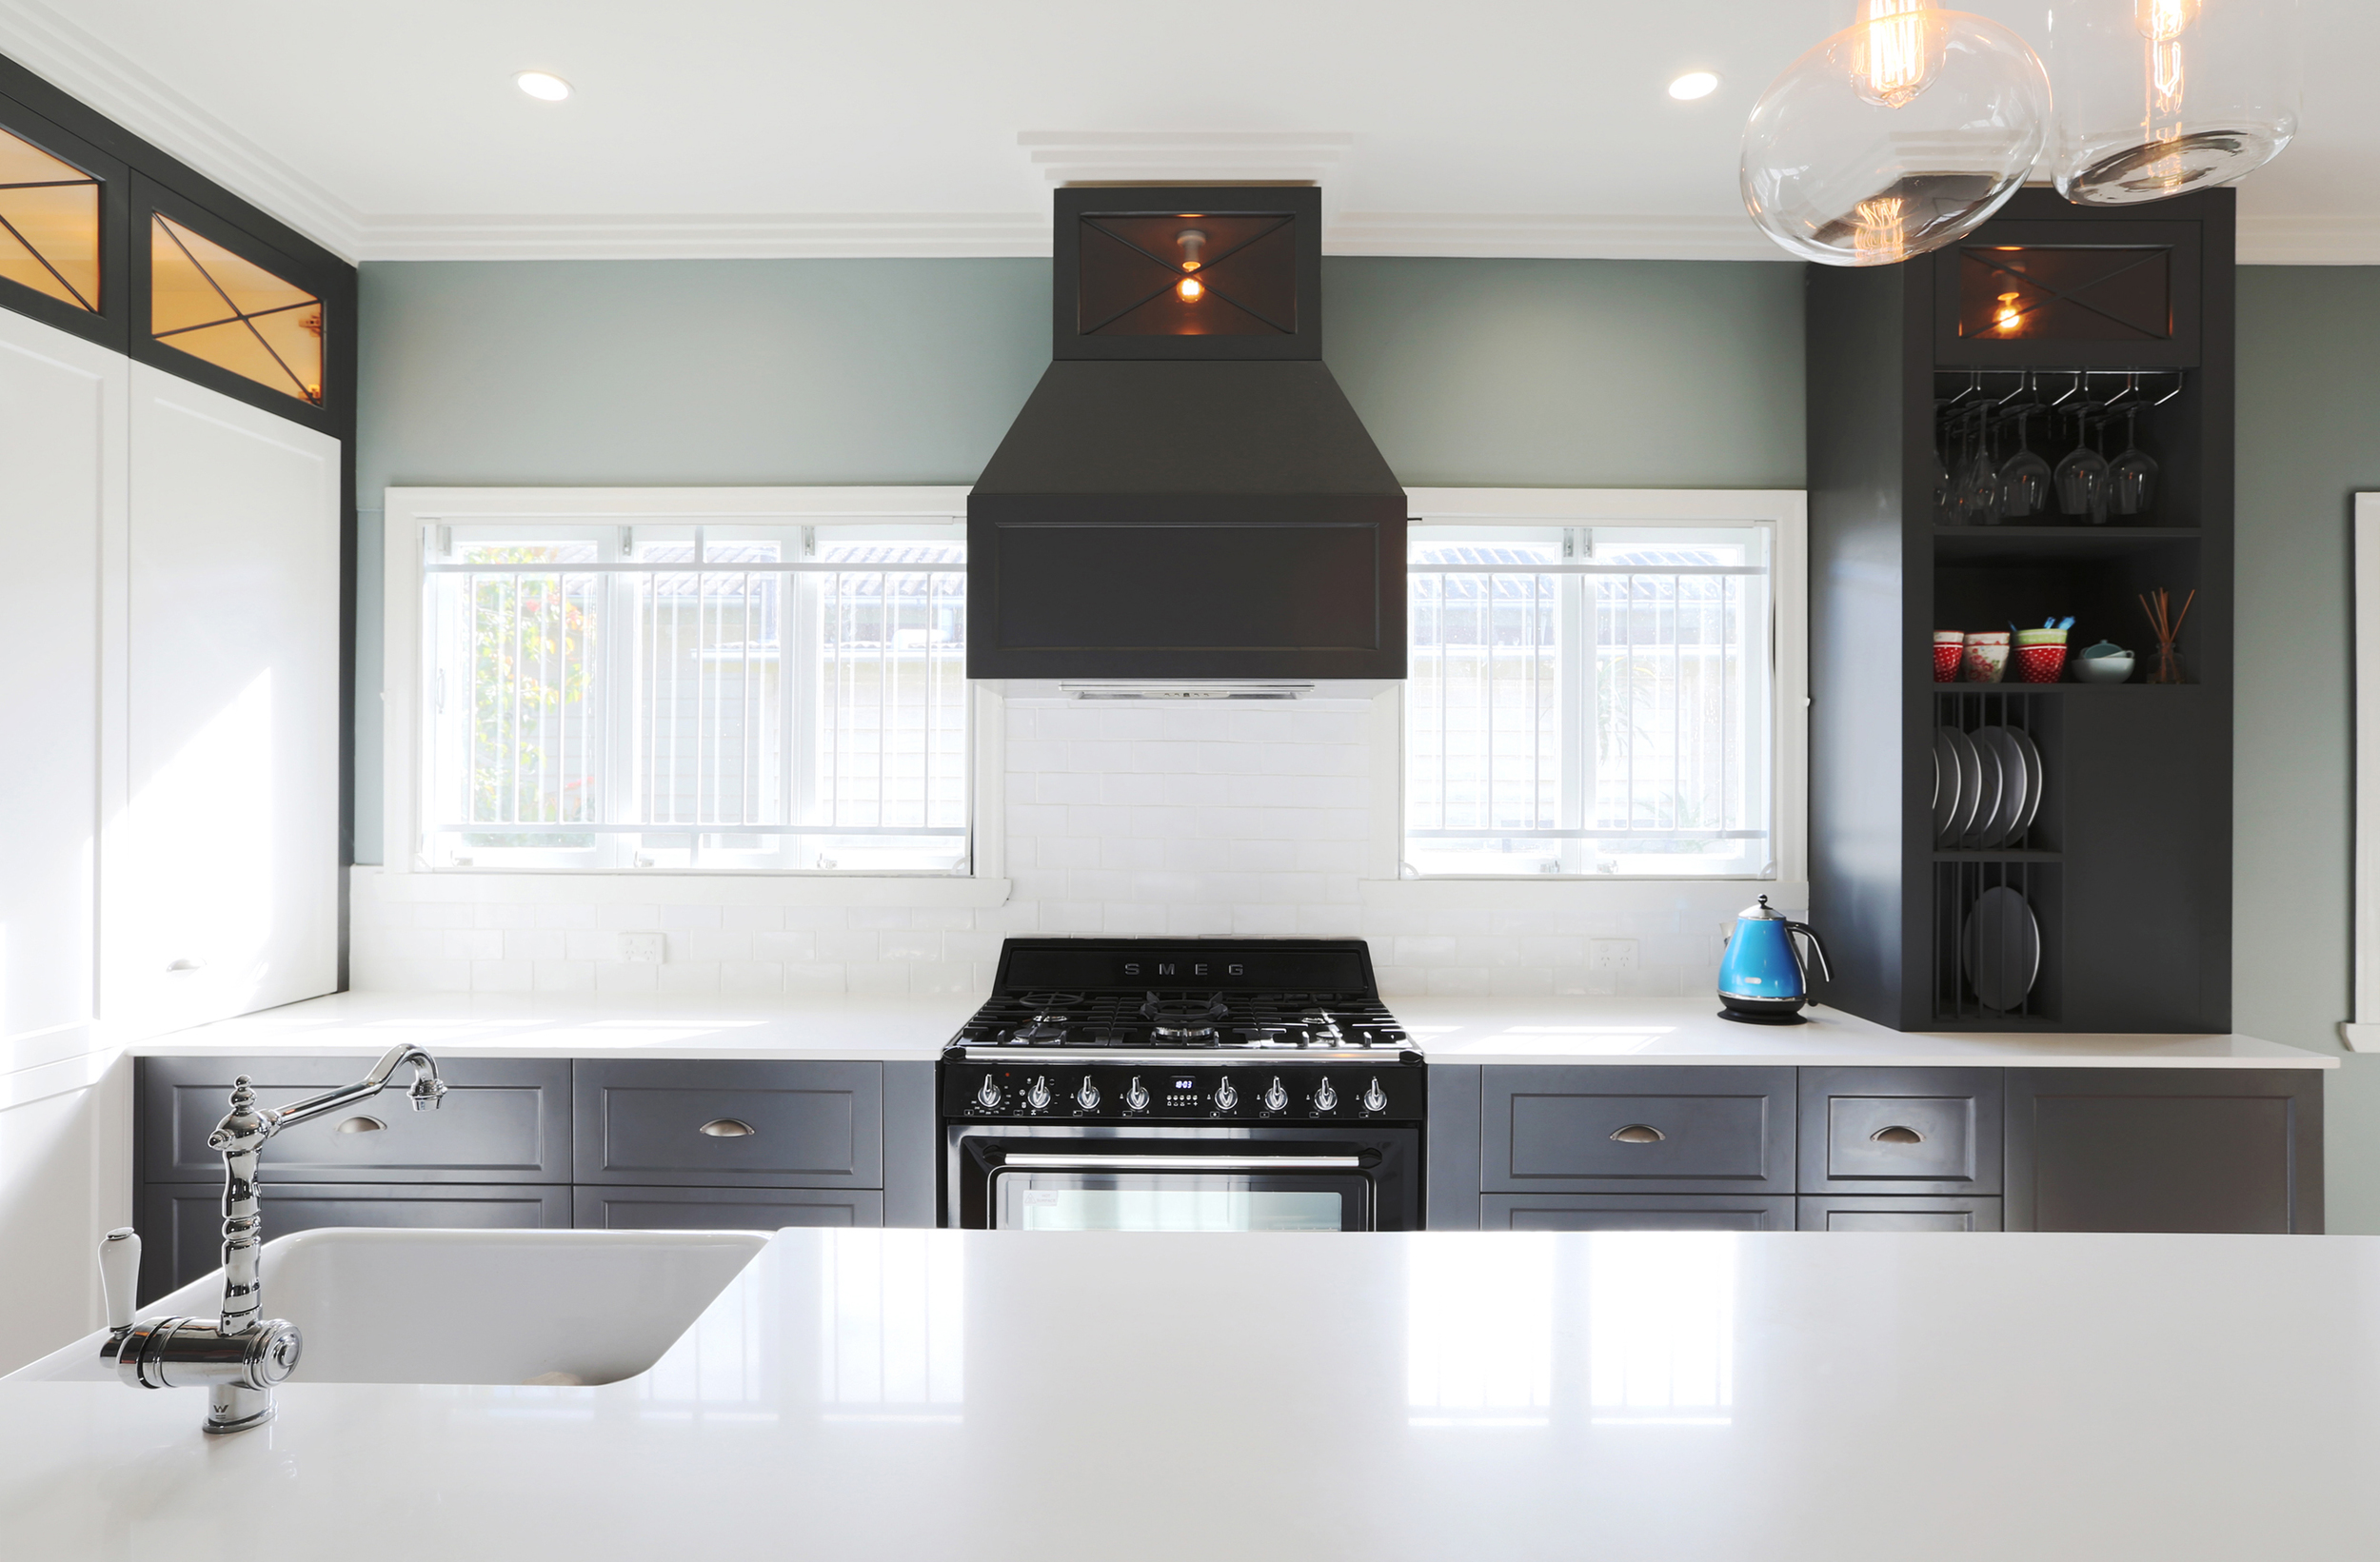 stylekitchensbydesign com kitchens by design 4